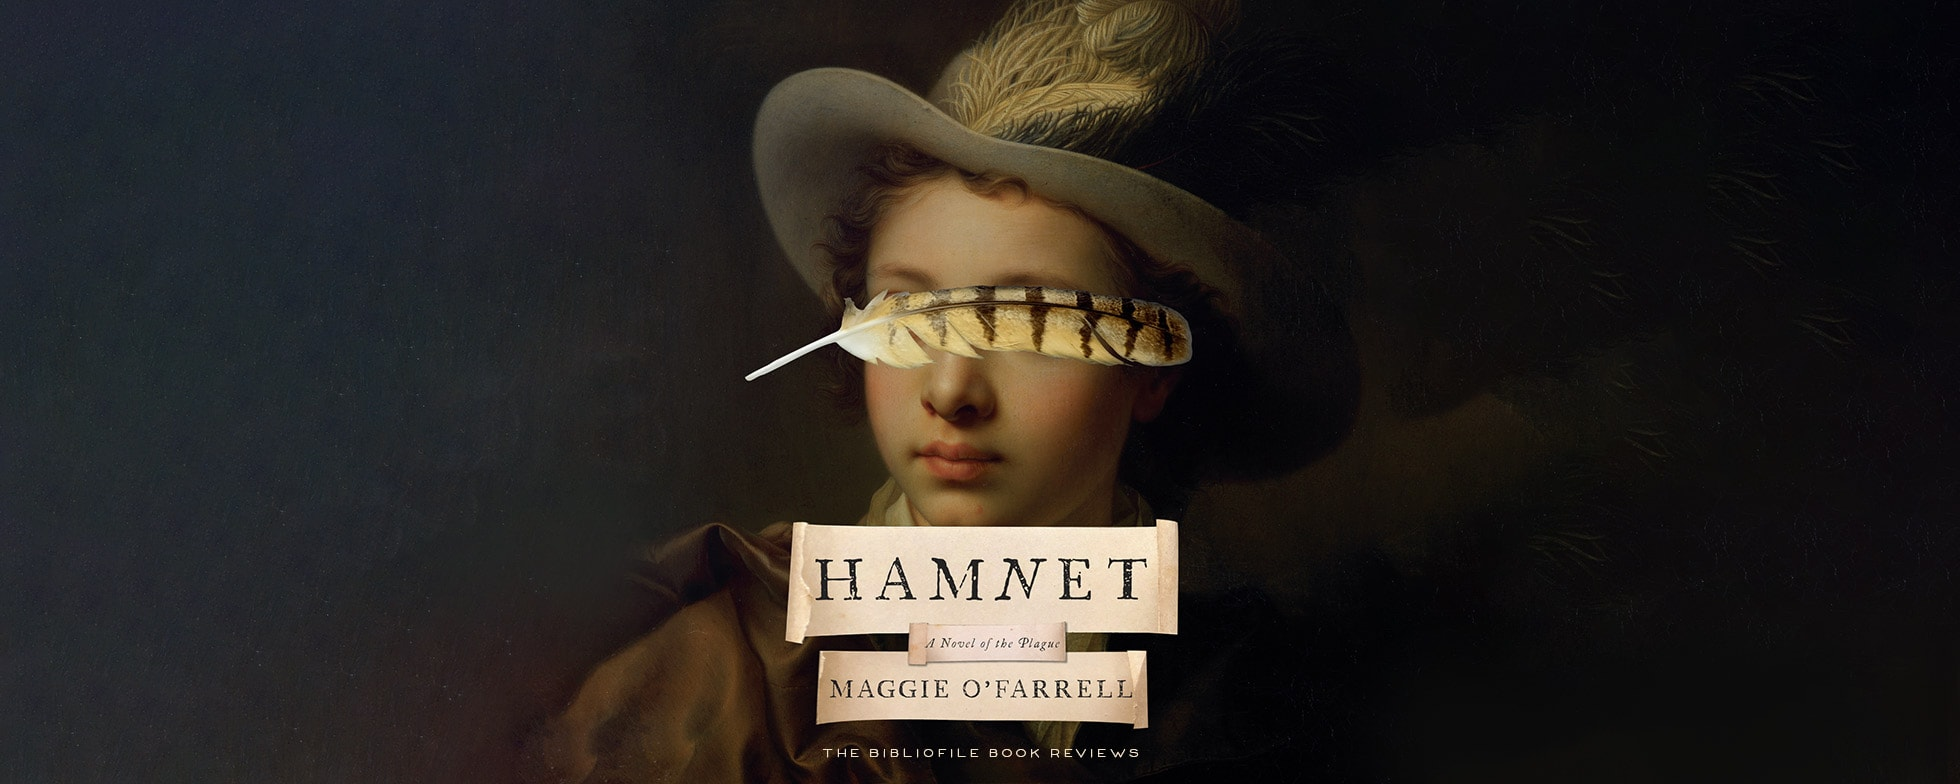 hamnet maggie ofarrell plot summary book synopsis review